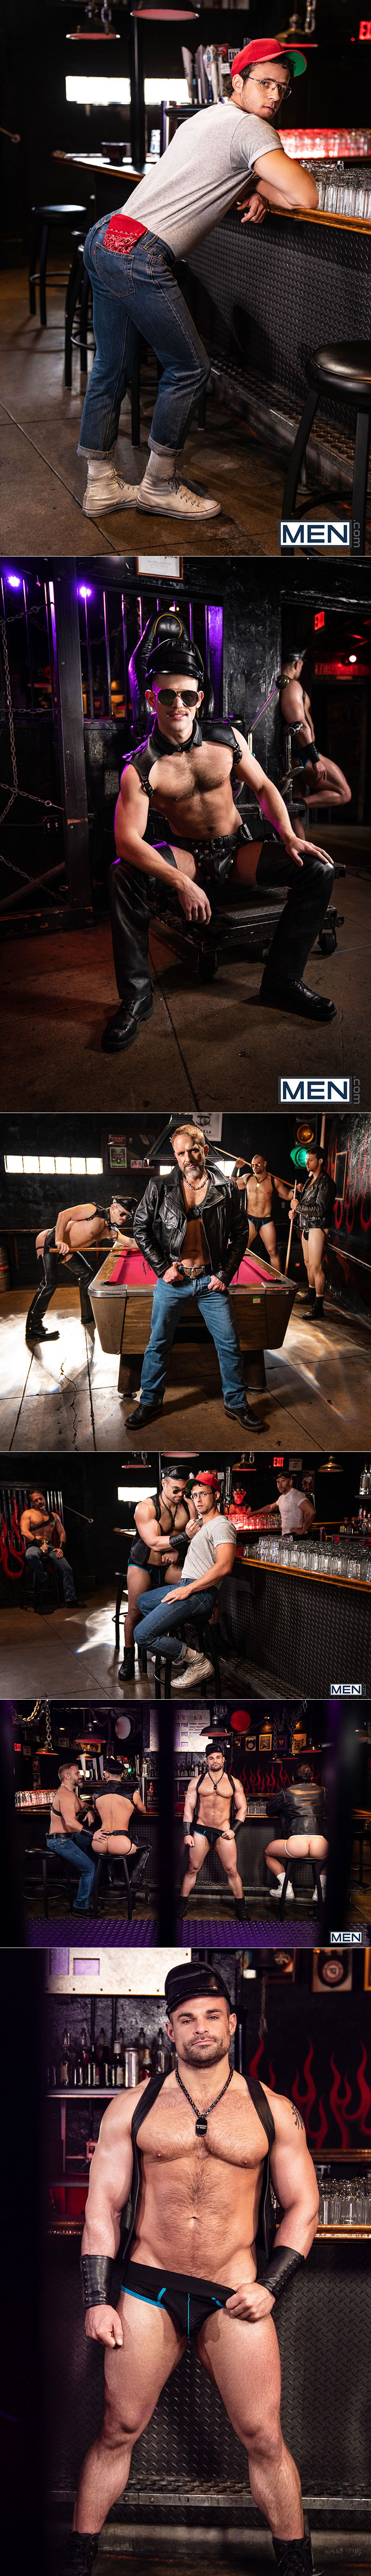 "Men.com: Dirk Caber, Kurtis Wolfe and Jaxx Thanatos fuck and fist Nate Grimes in ""Tom Of Finland - Leather Bar Initiation"""